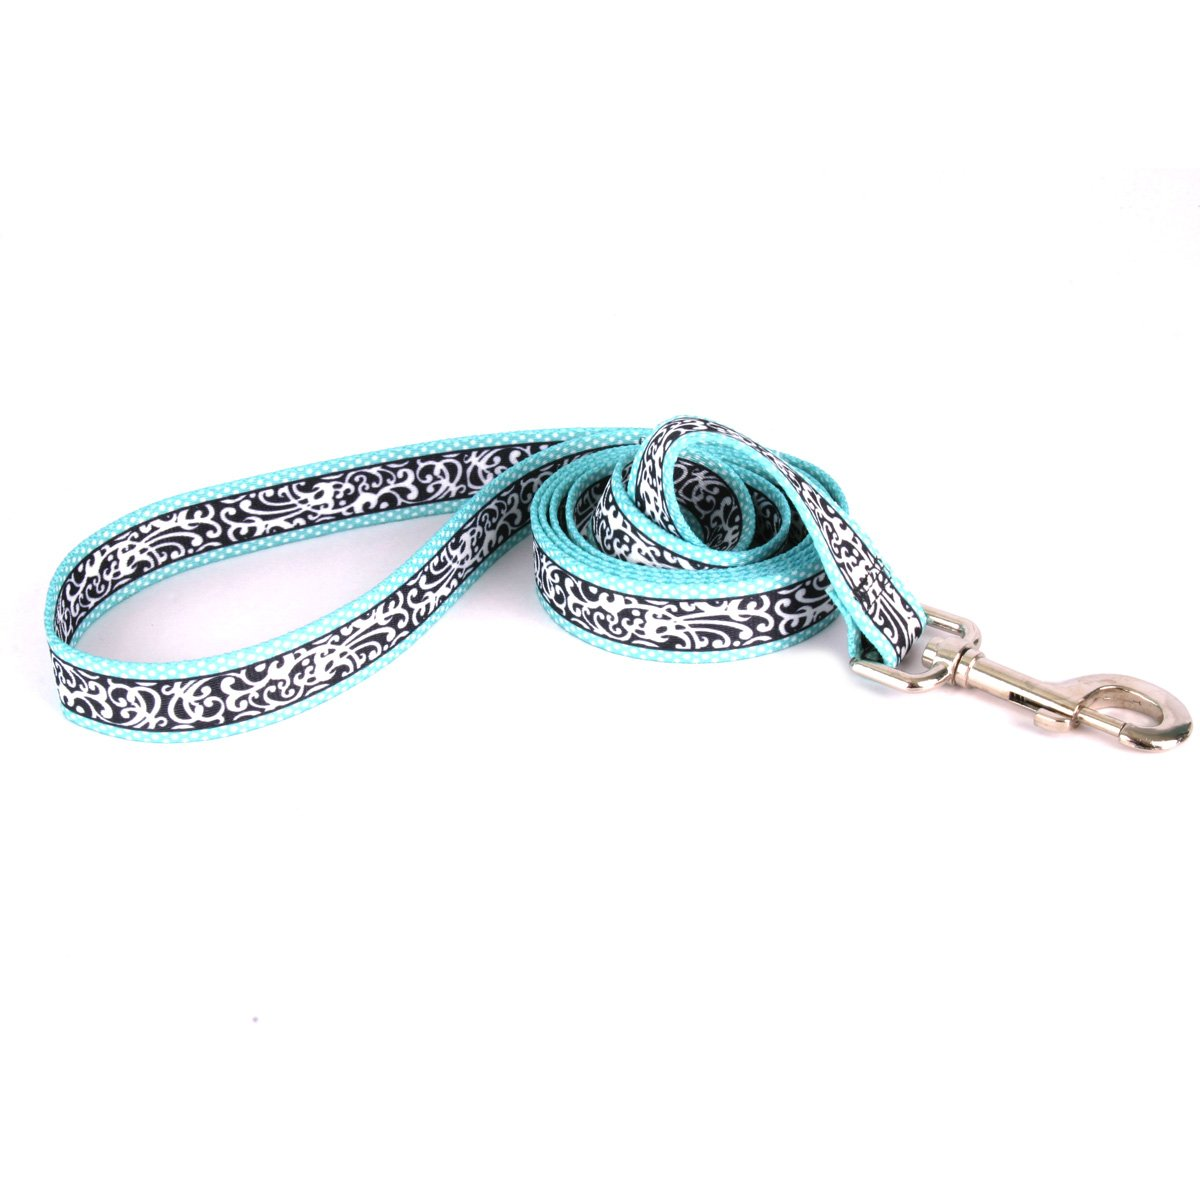 Yellow Dog Design Chantilly Teal Dog Leash 1'' Wide and 5' (60'') Long, Large by Yellow Dog Design